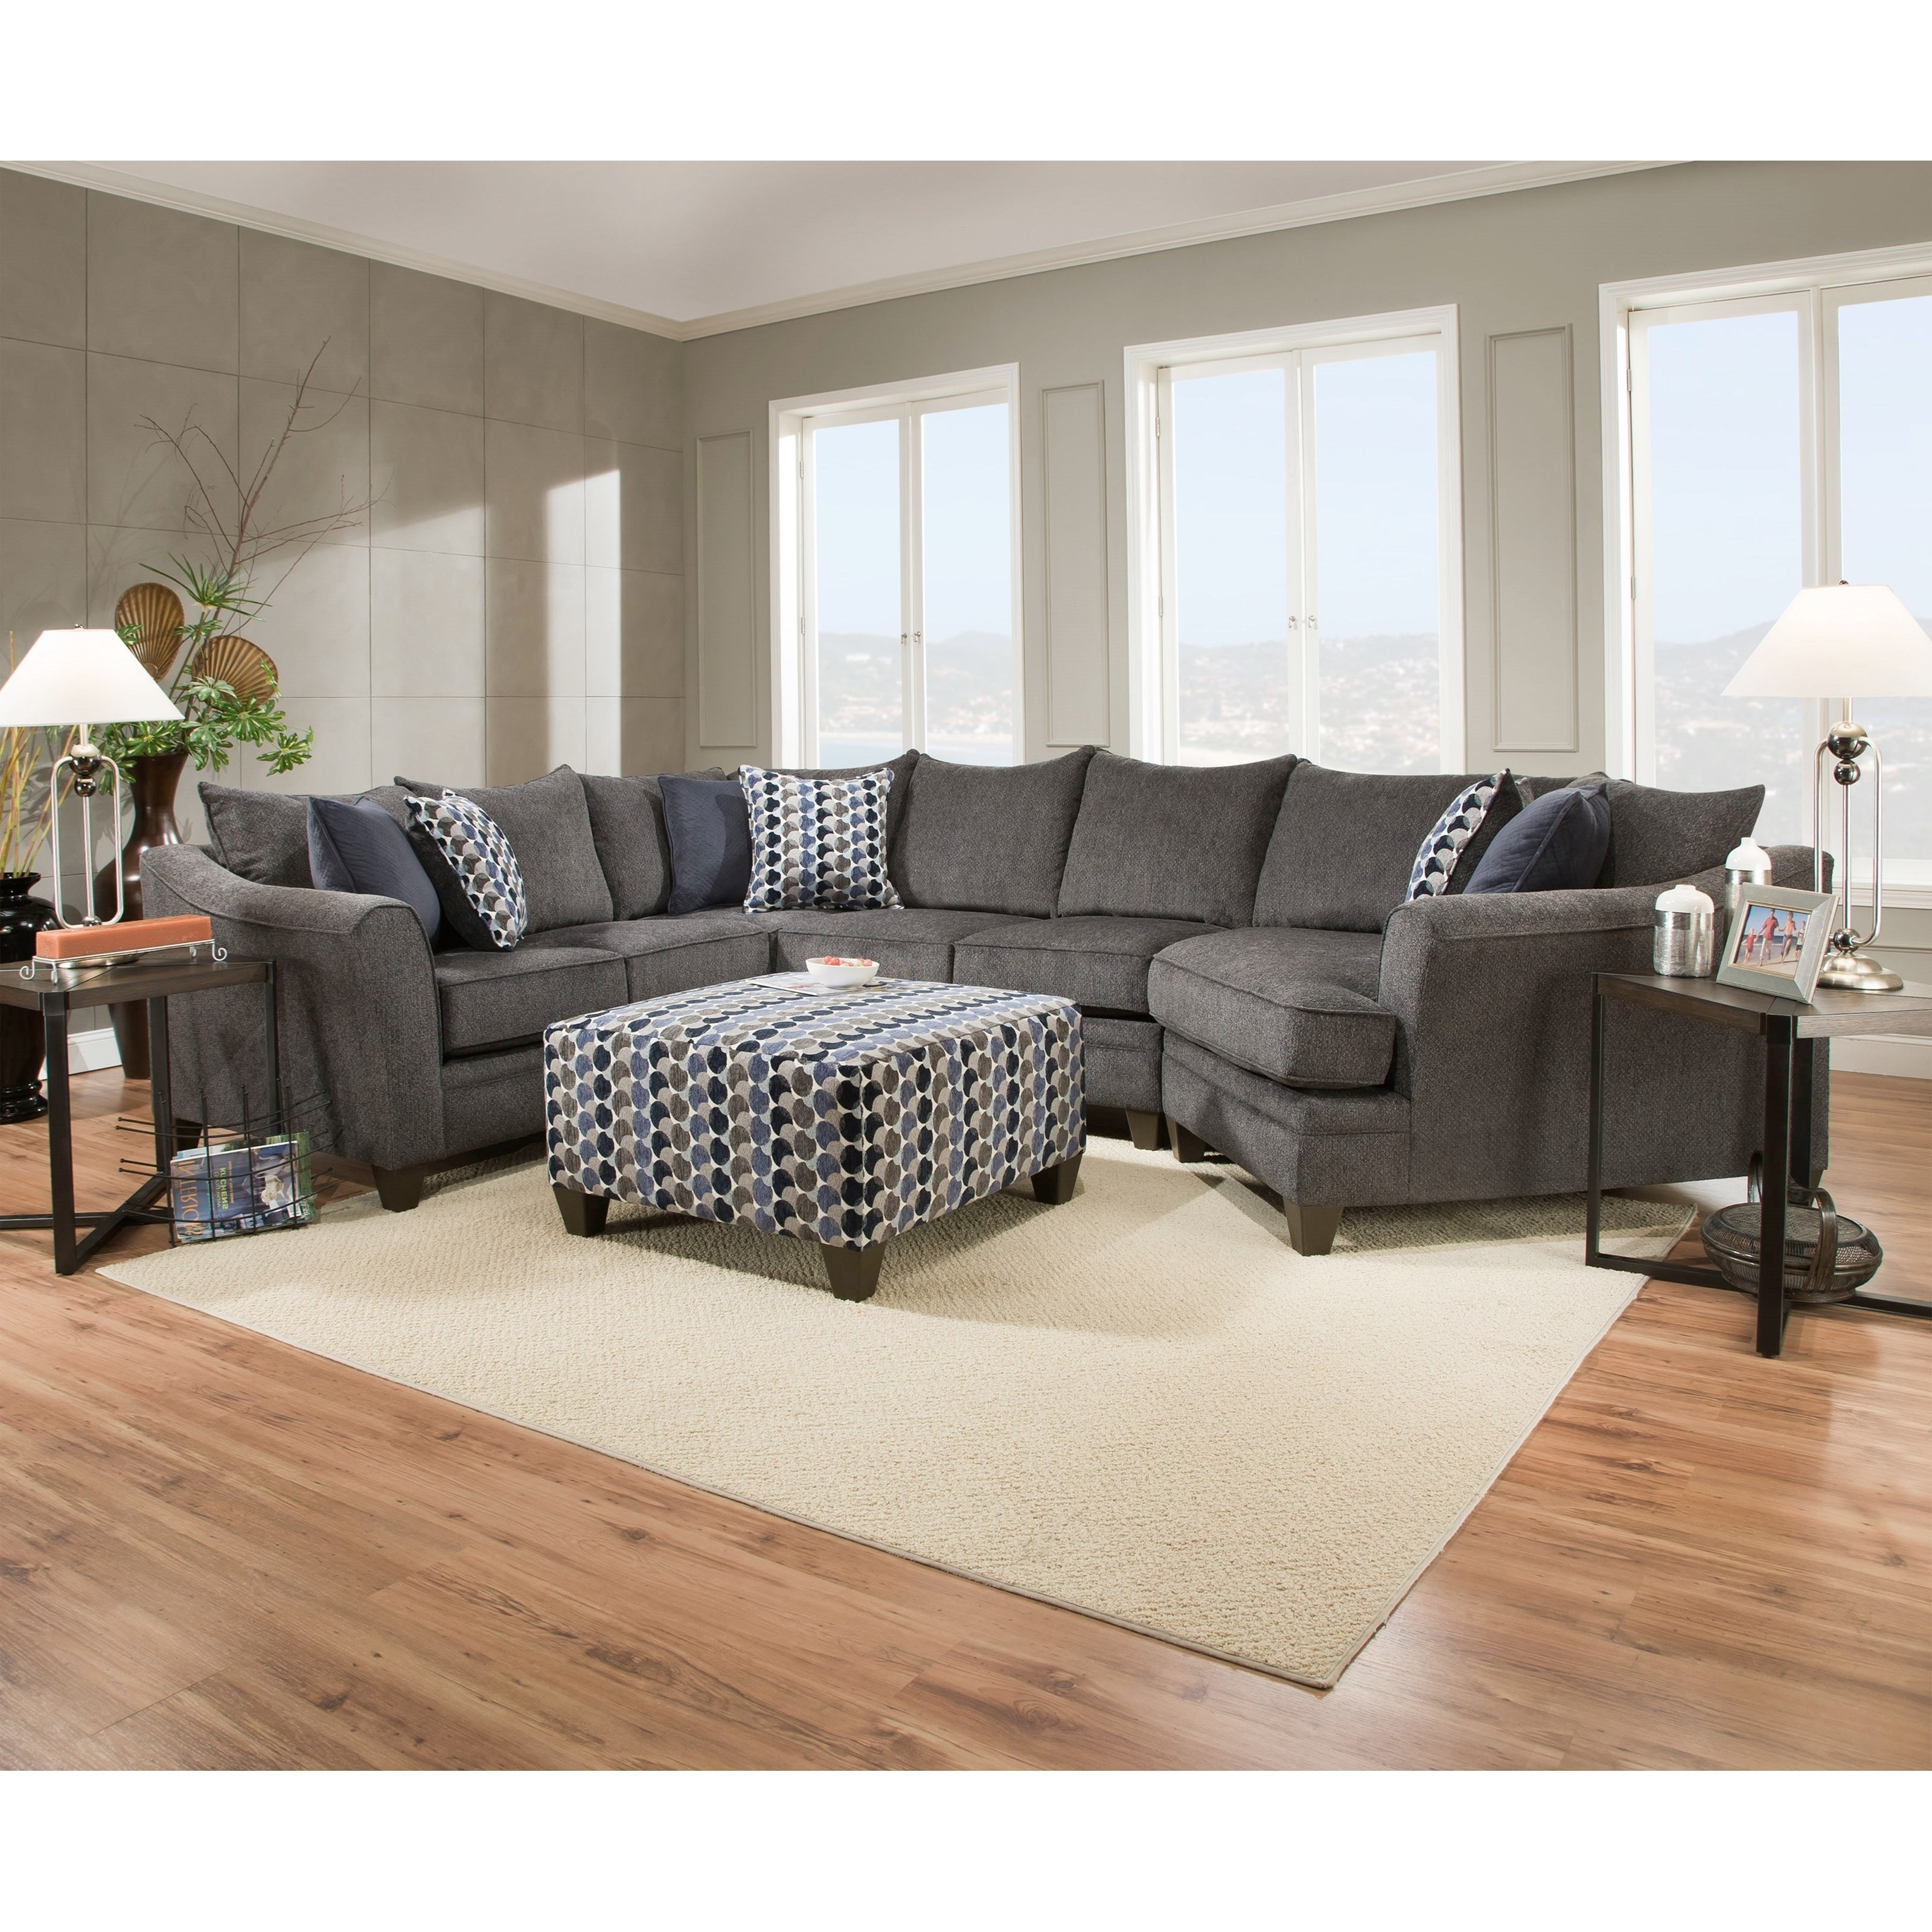 United Furniture Industries 6485 Albany Slate Transitional In 2019 Wilmington Nc Sectional Sofas (Gallery 7 of 20)